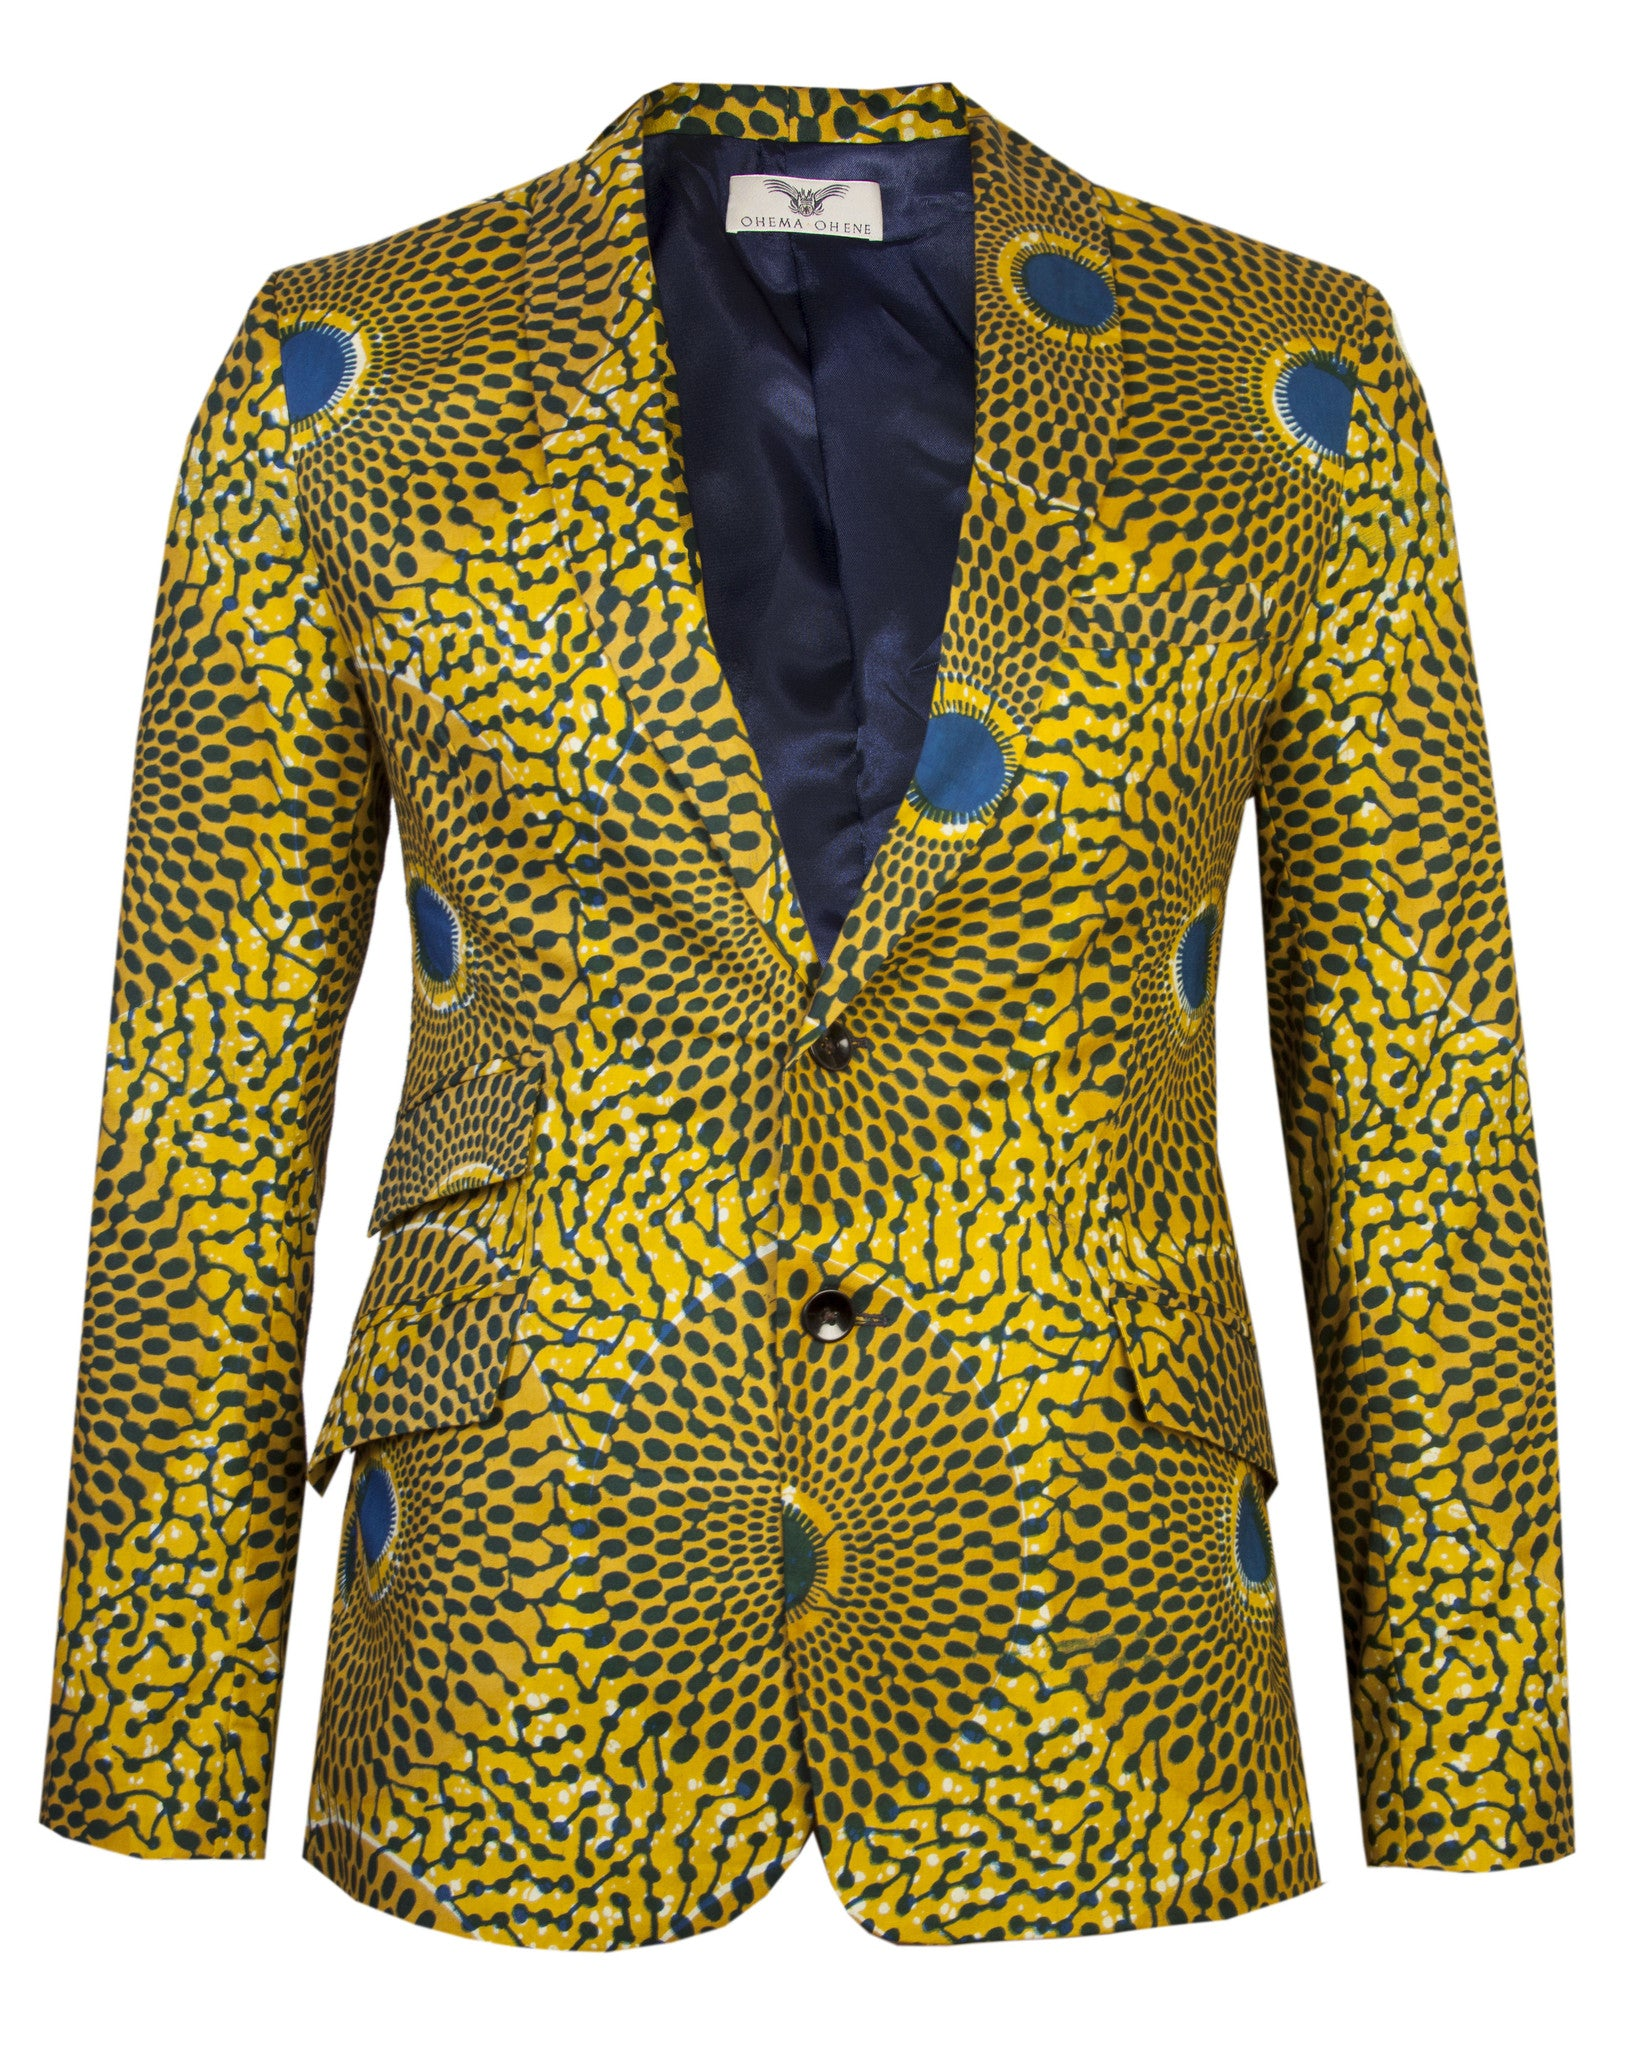 Men's 2 button blazer 'Nsubra' African print - OHEMA OHENE AFRICAN INSPIRED FASHION  - 1